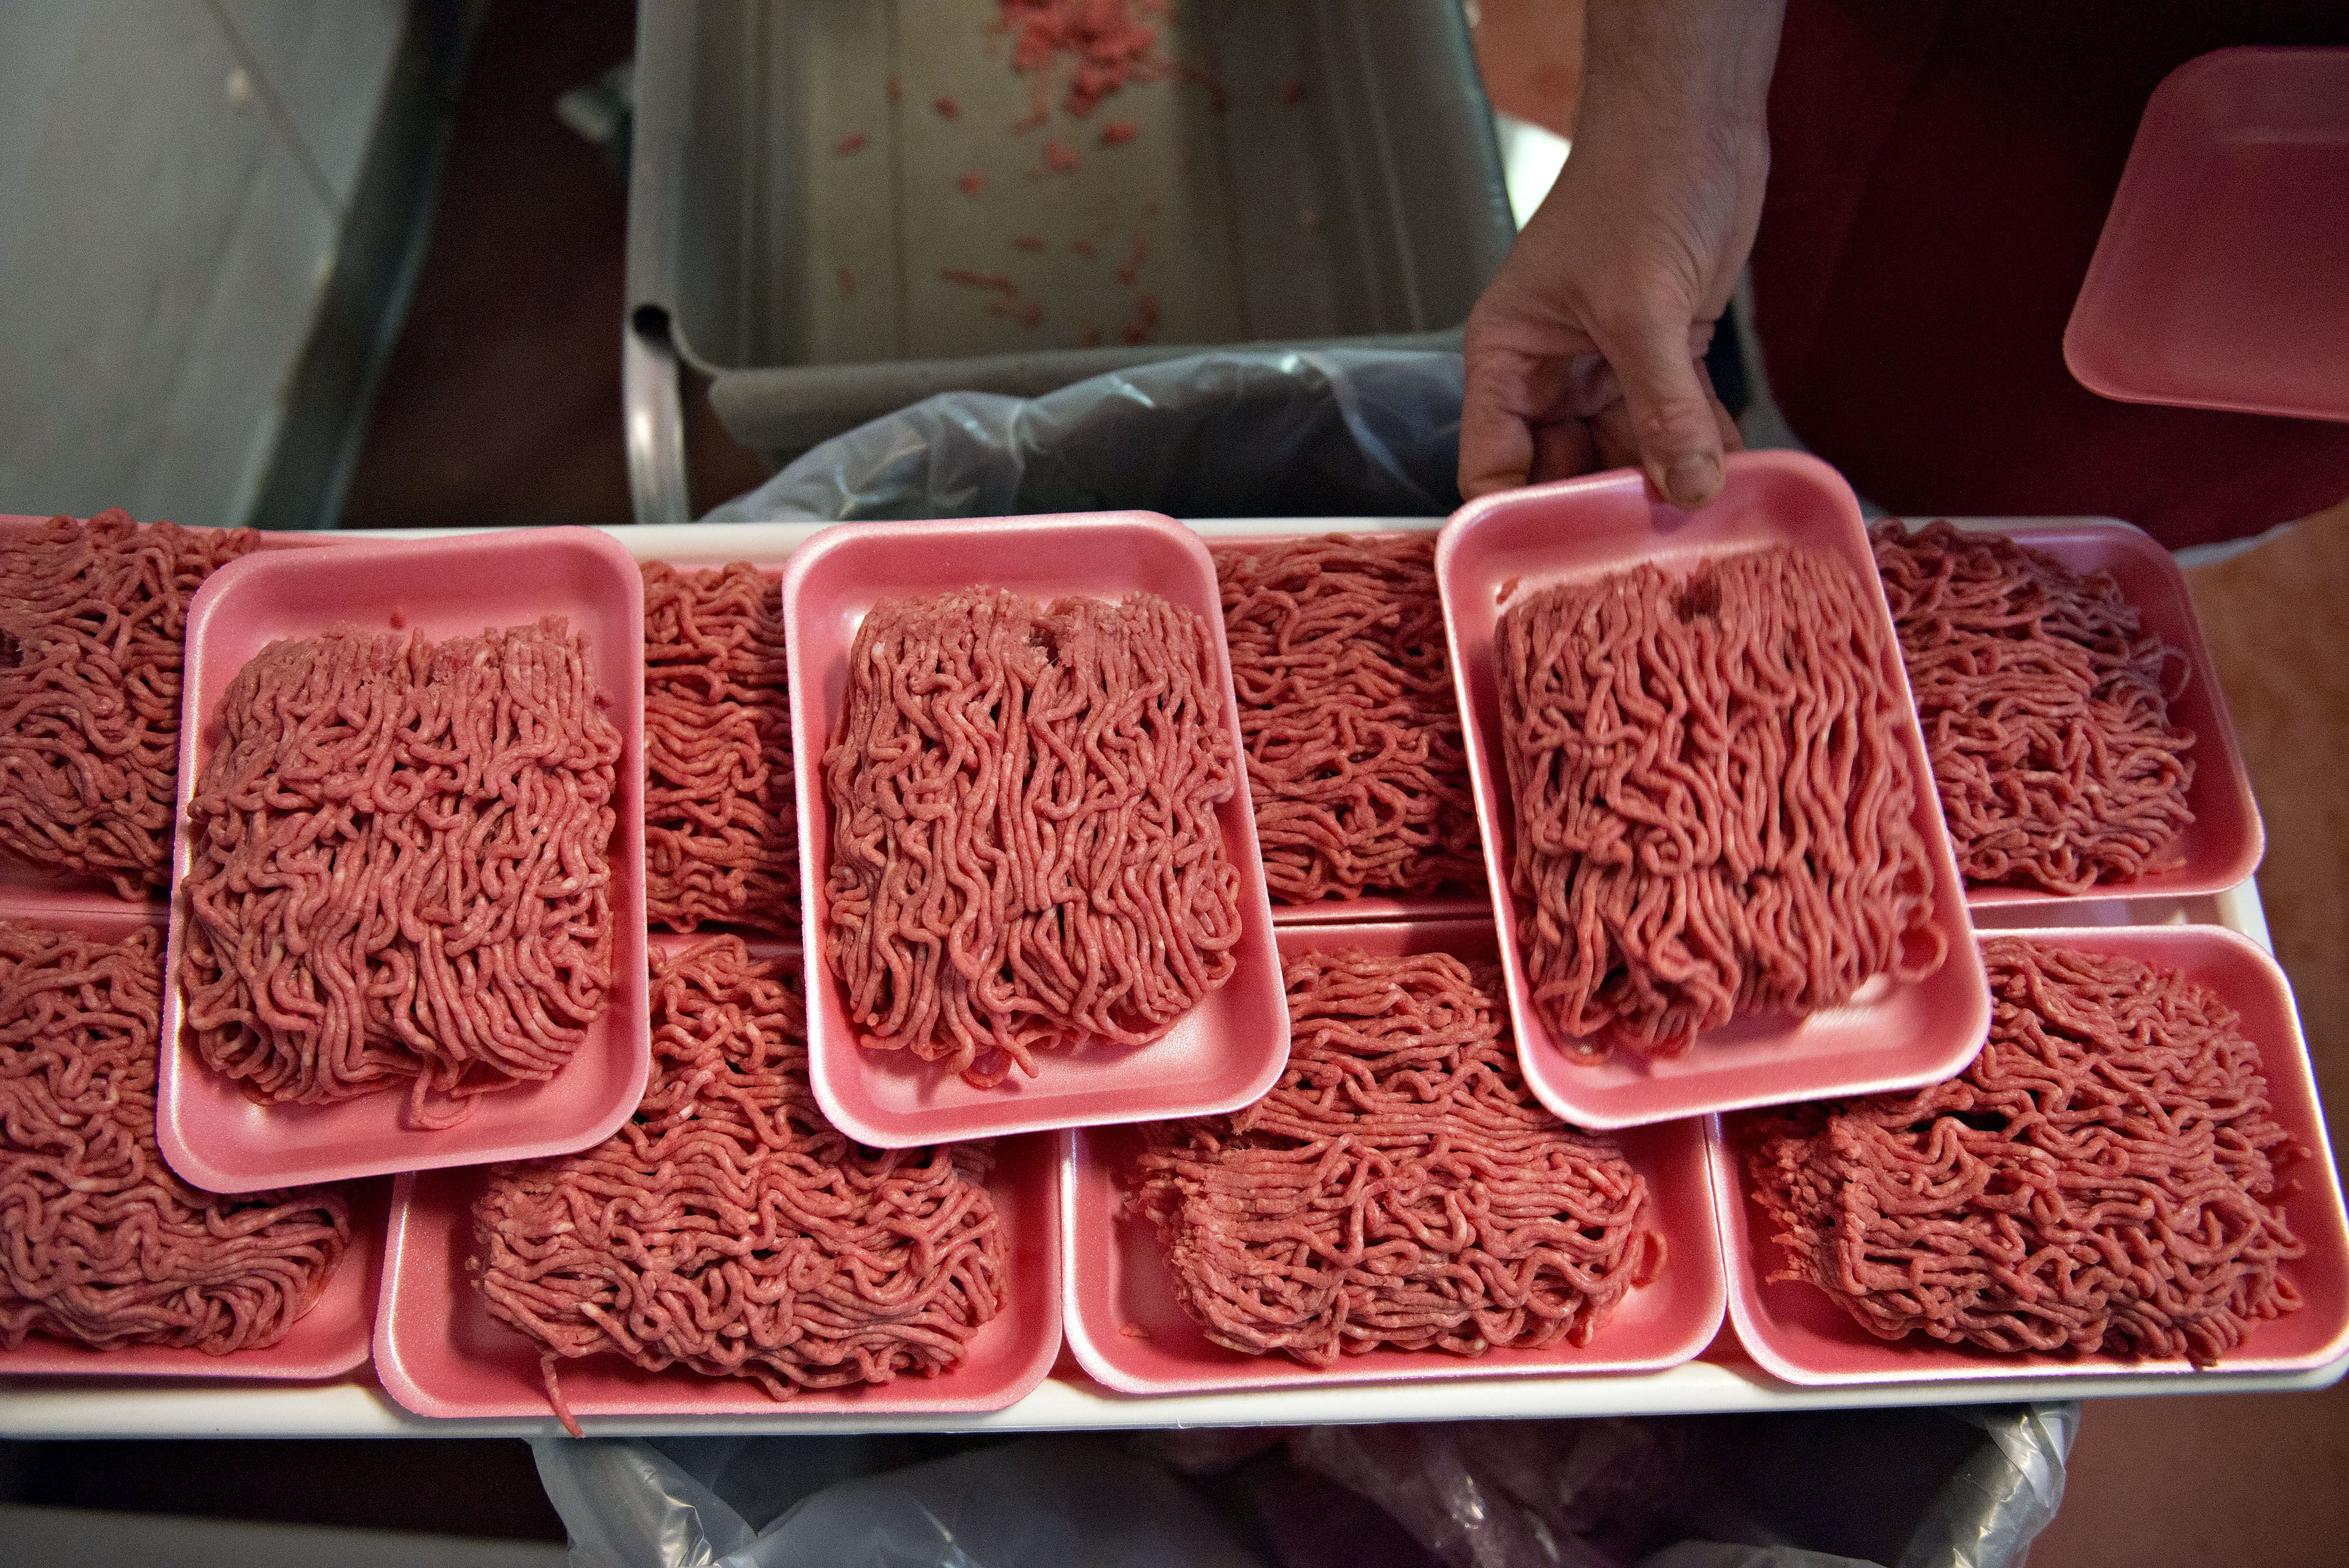 Ground beef is portioned onto trays at a supermarket meat department, July 2, 2014.